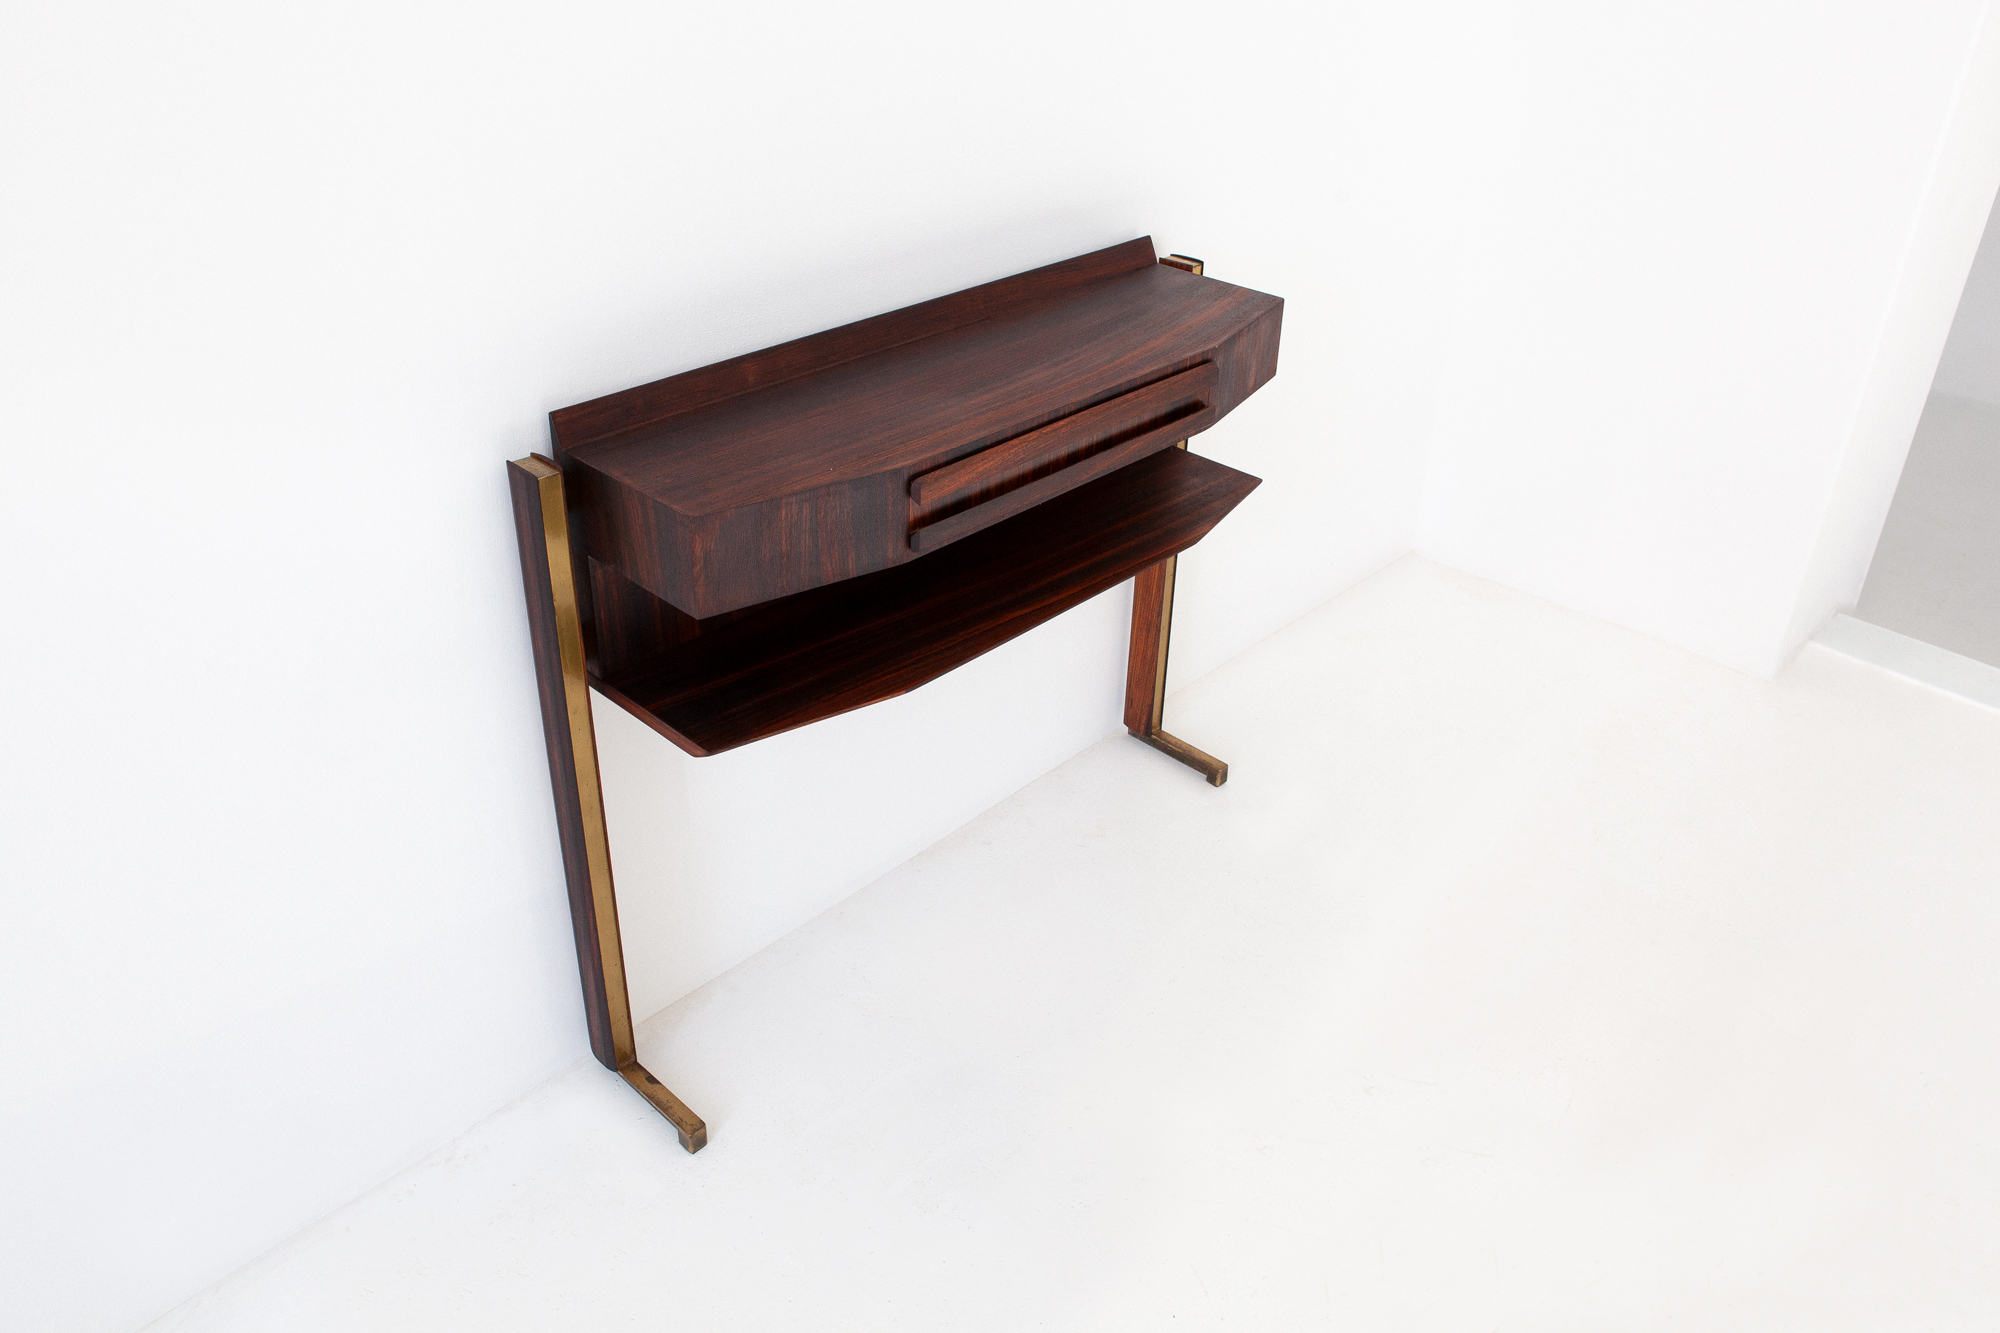 OF85-retro4m-1950s-italian-rosewood-brass-console-table-1